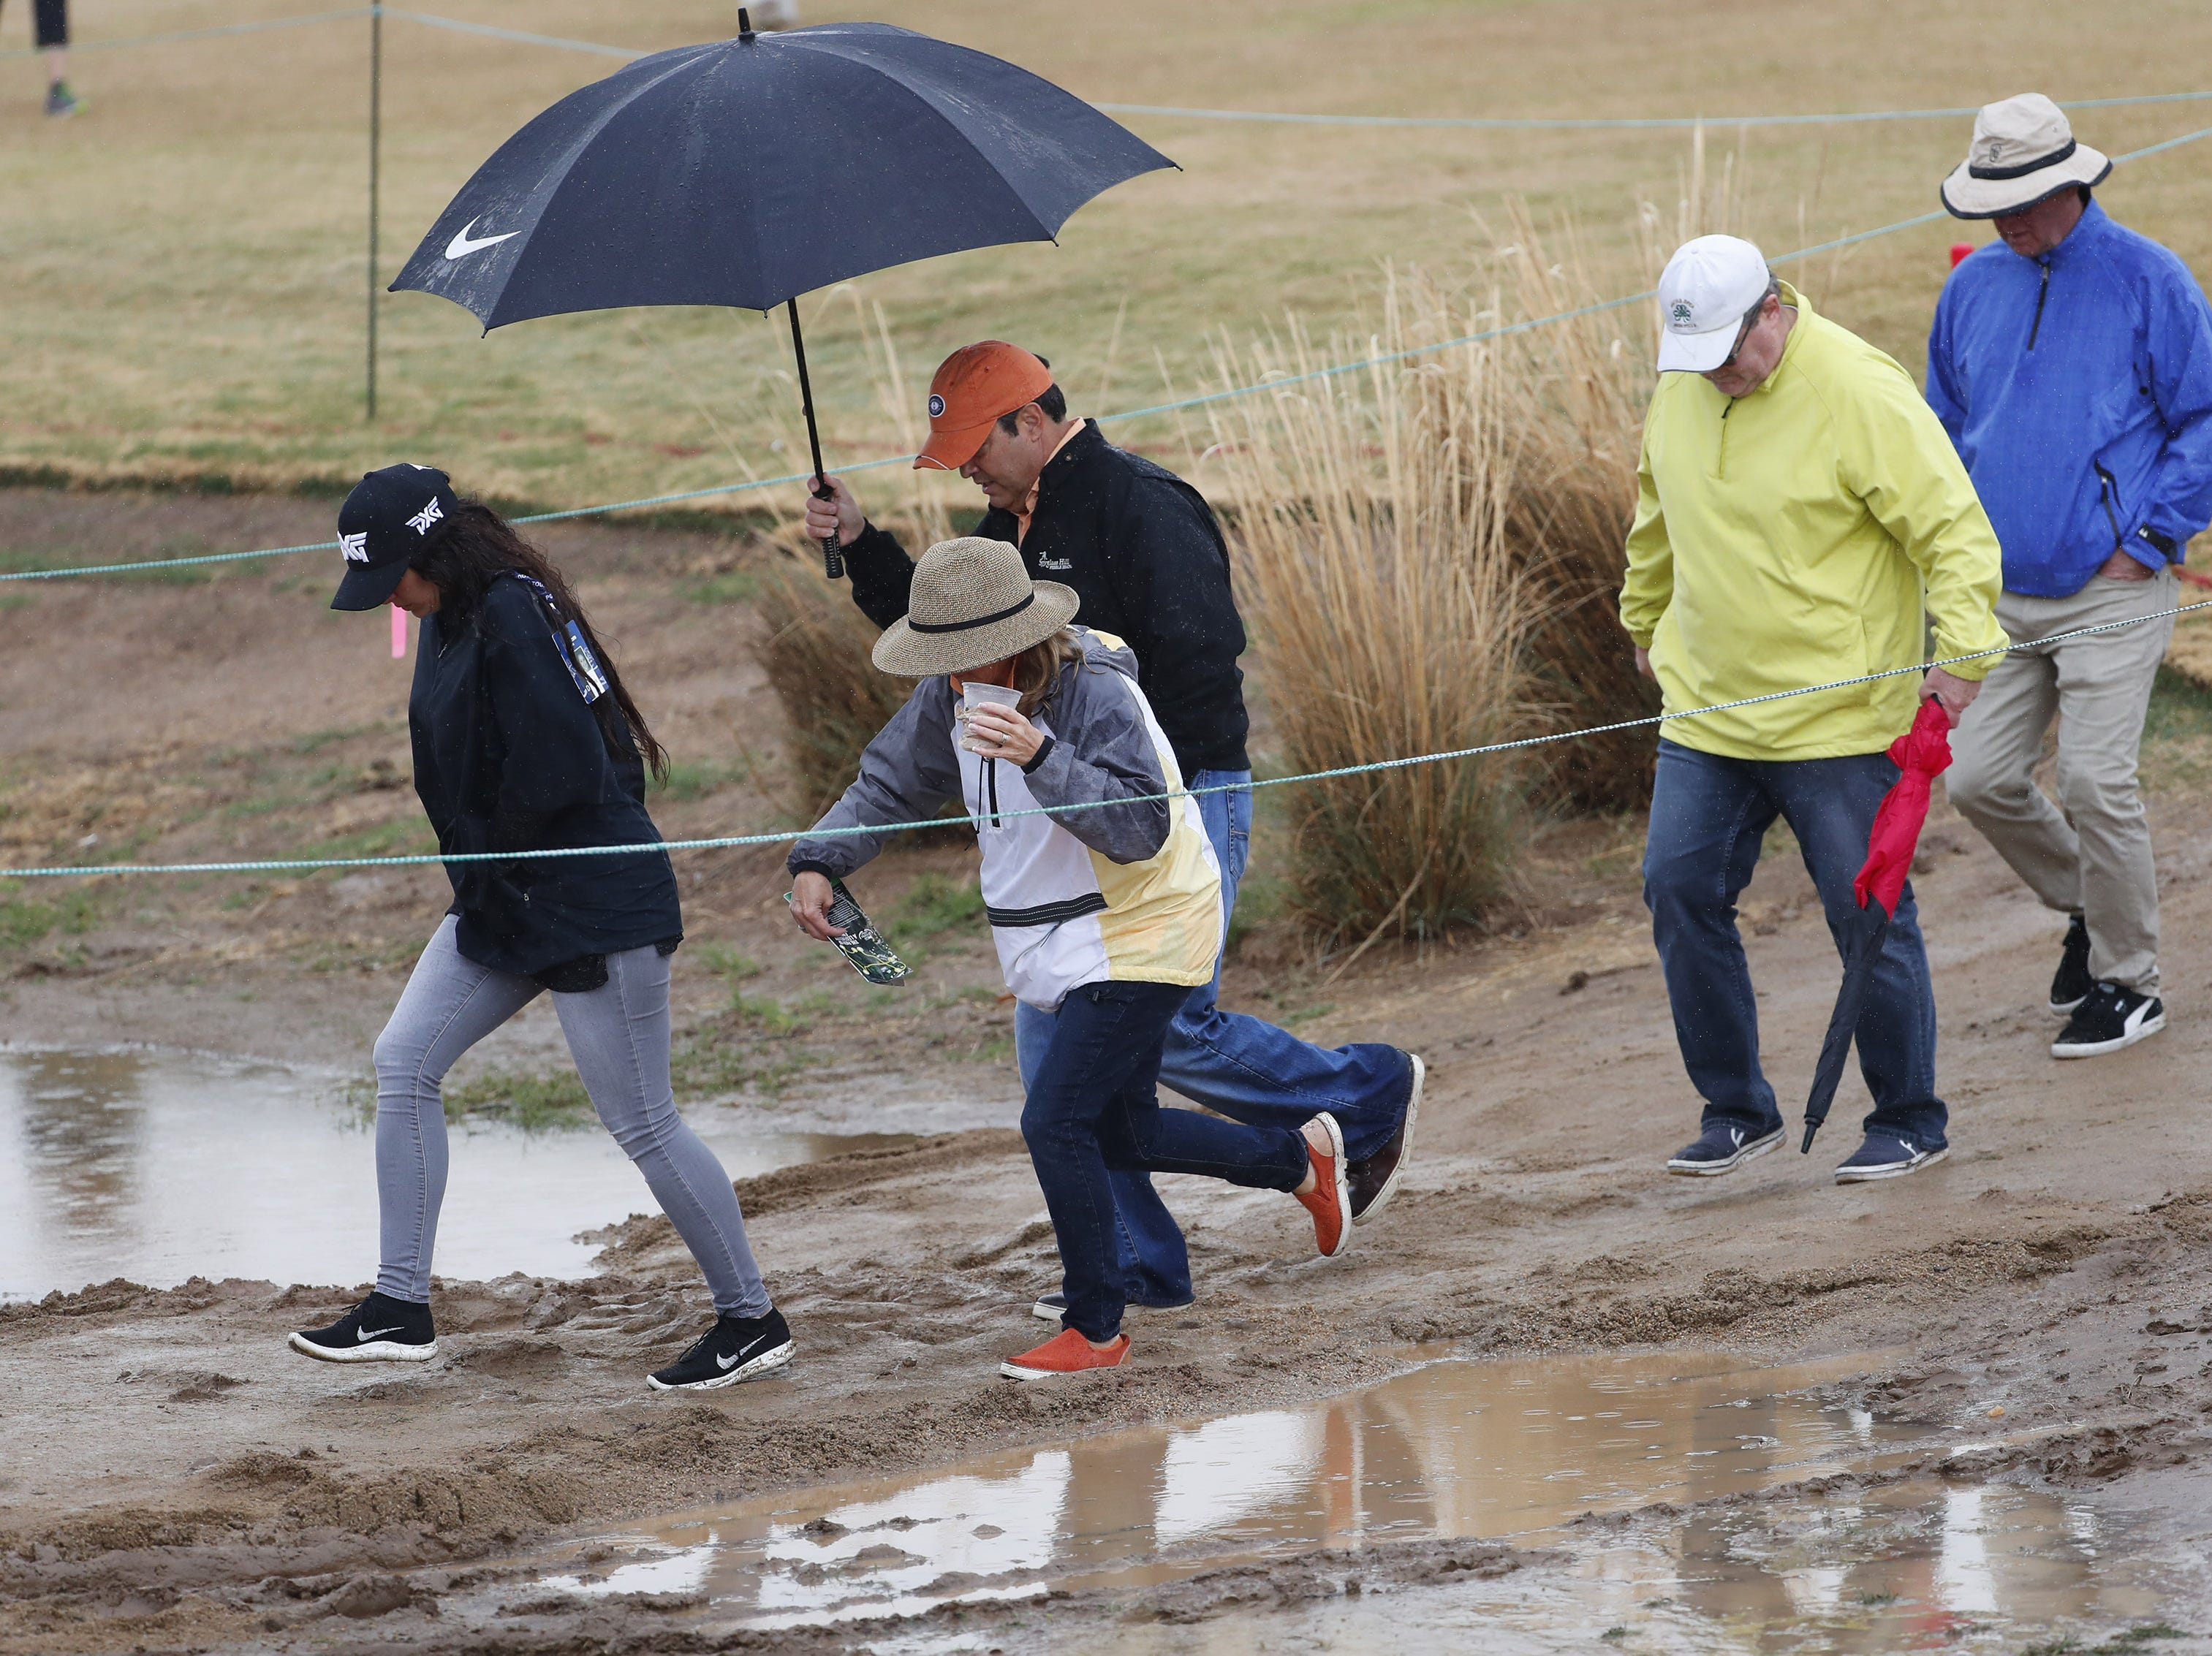 Fans walk through mud during the final round of the Waste Management Phoenix Open at the TPC Scottsdale Feb. 3, 2019.